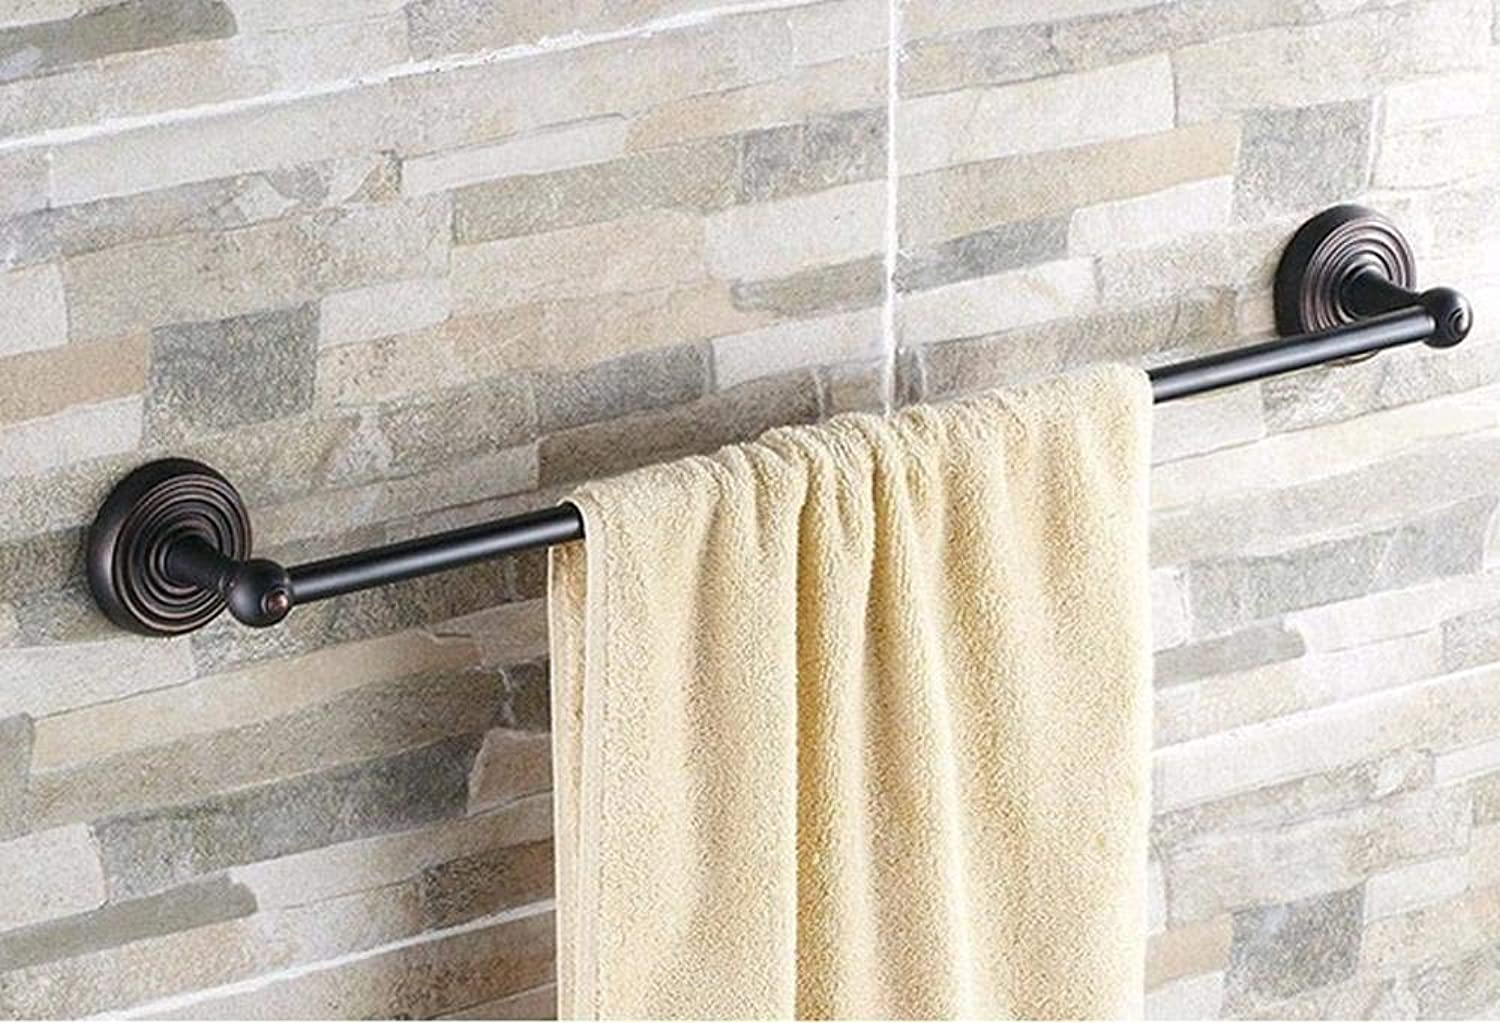 Elegant Towel Stand Black Oil Rubbed Brass Bathroom Wall Mounted Single Towel Bar Holders